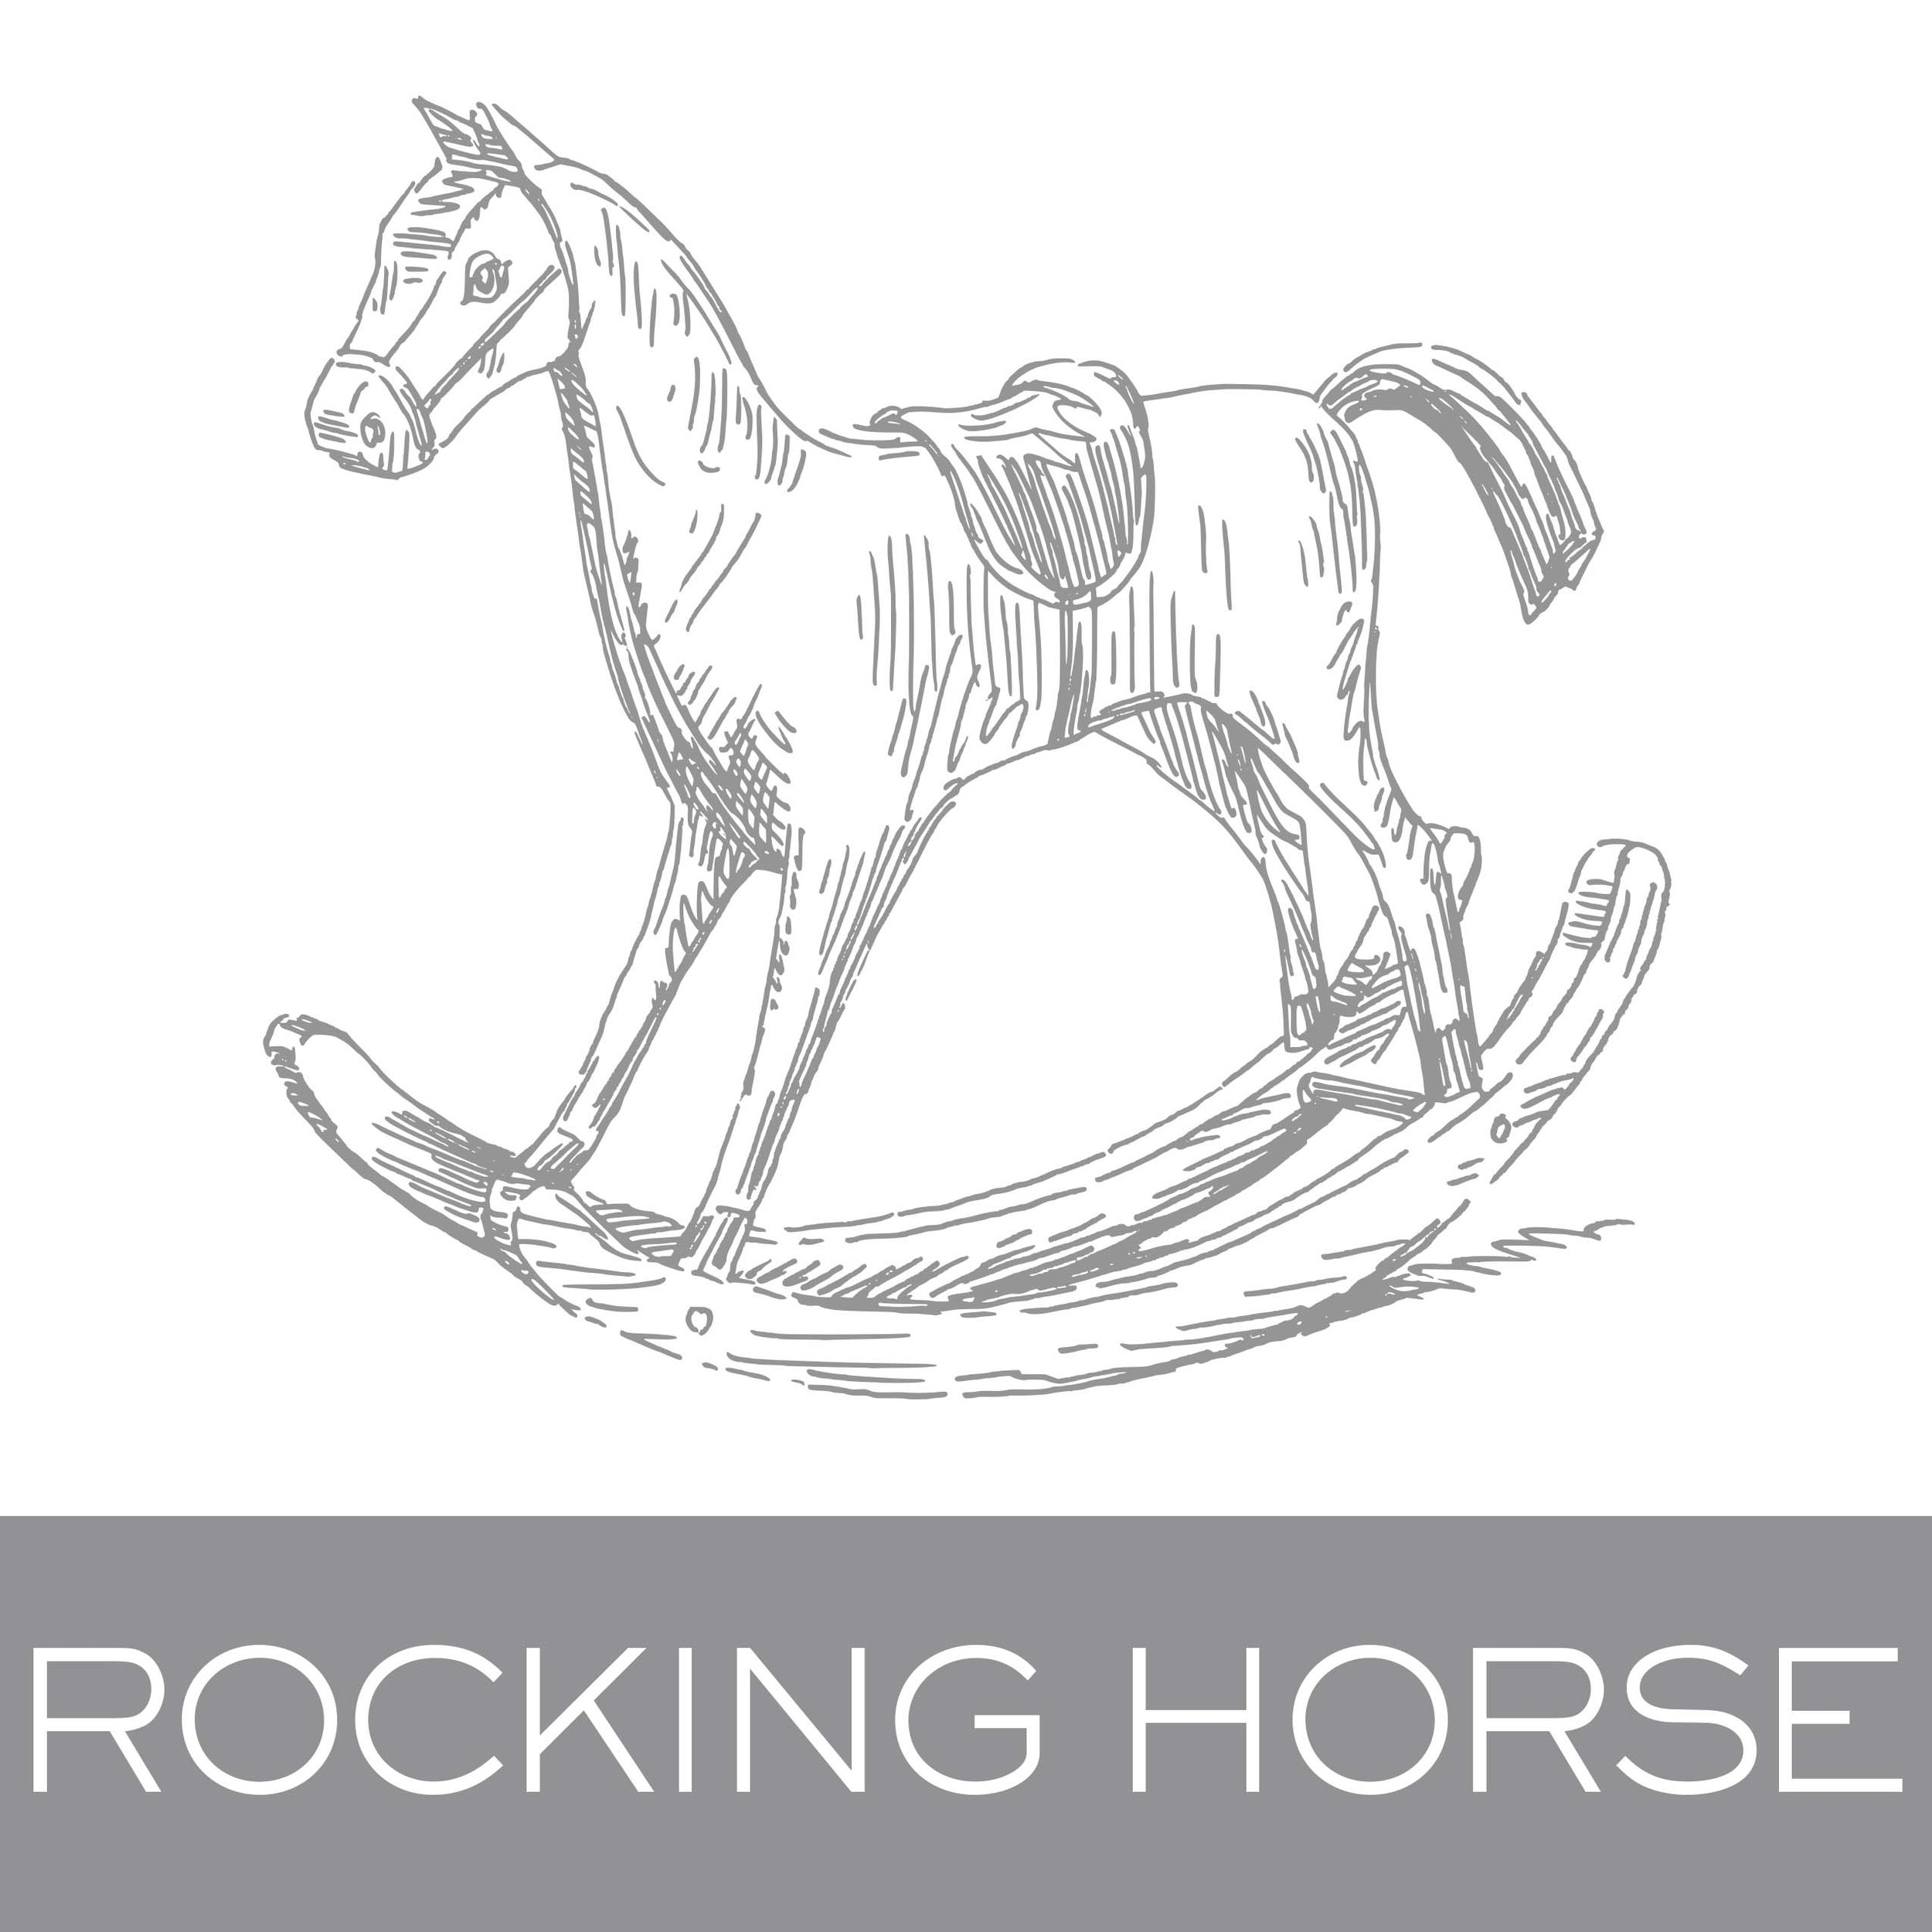 rockinghorse.jpg